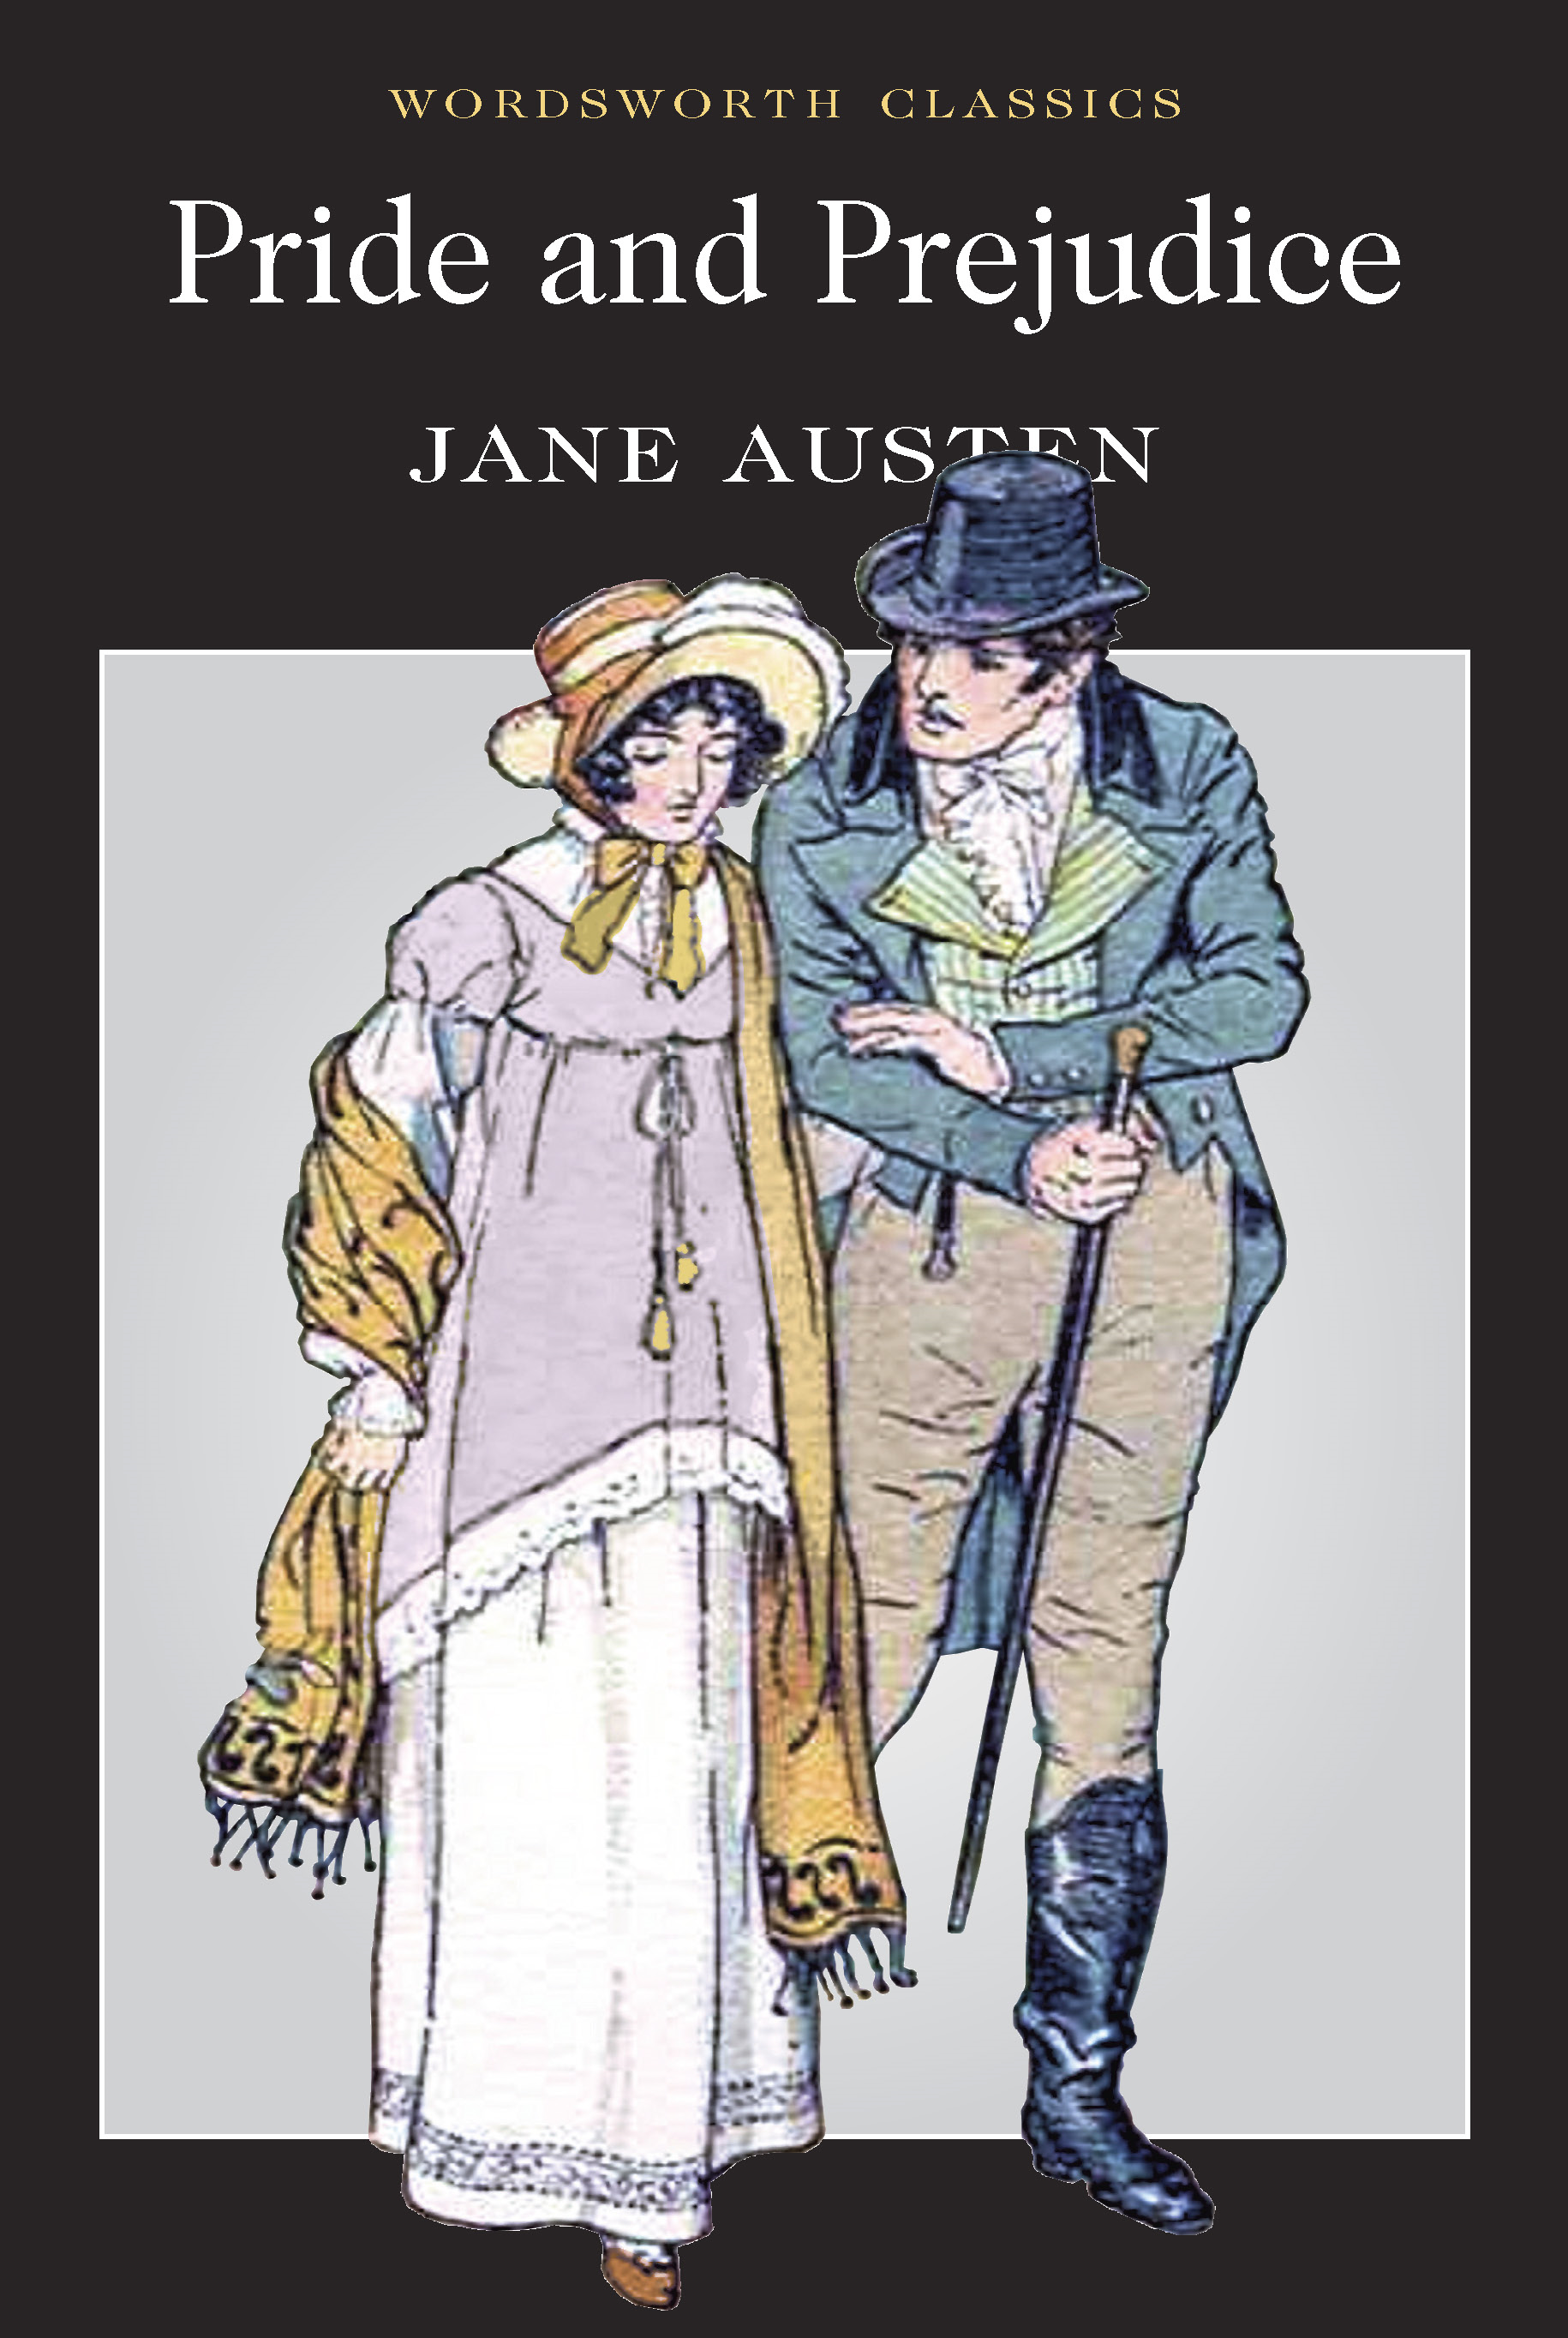 Pride and Prejudice By: Dr Ian Littlewood,Dr Keith Carabine,Jane Austen